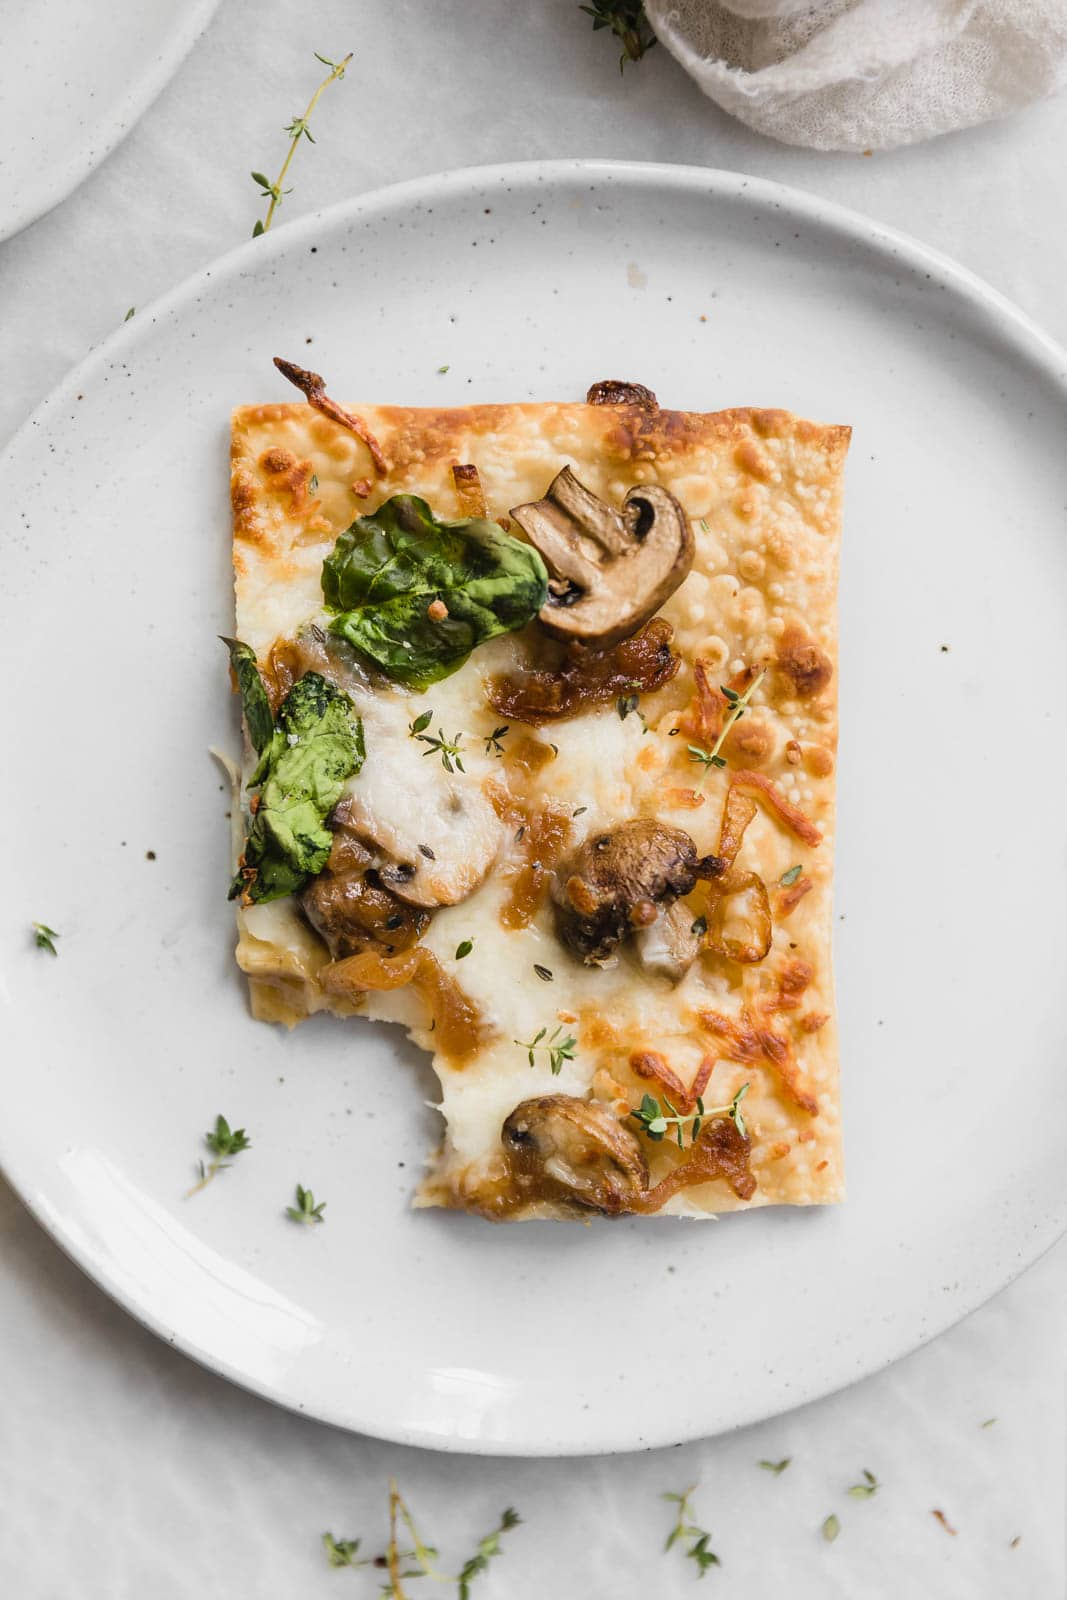 Caramelized Onion, Mushroom, & Spinach Pizza slice on a plate